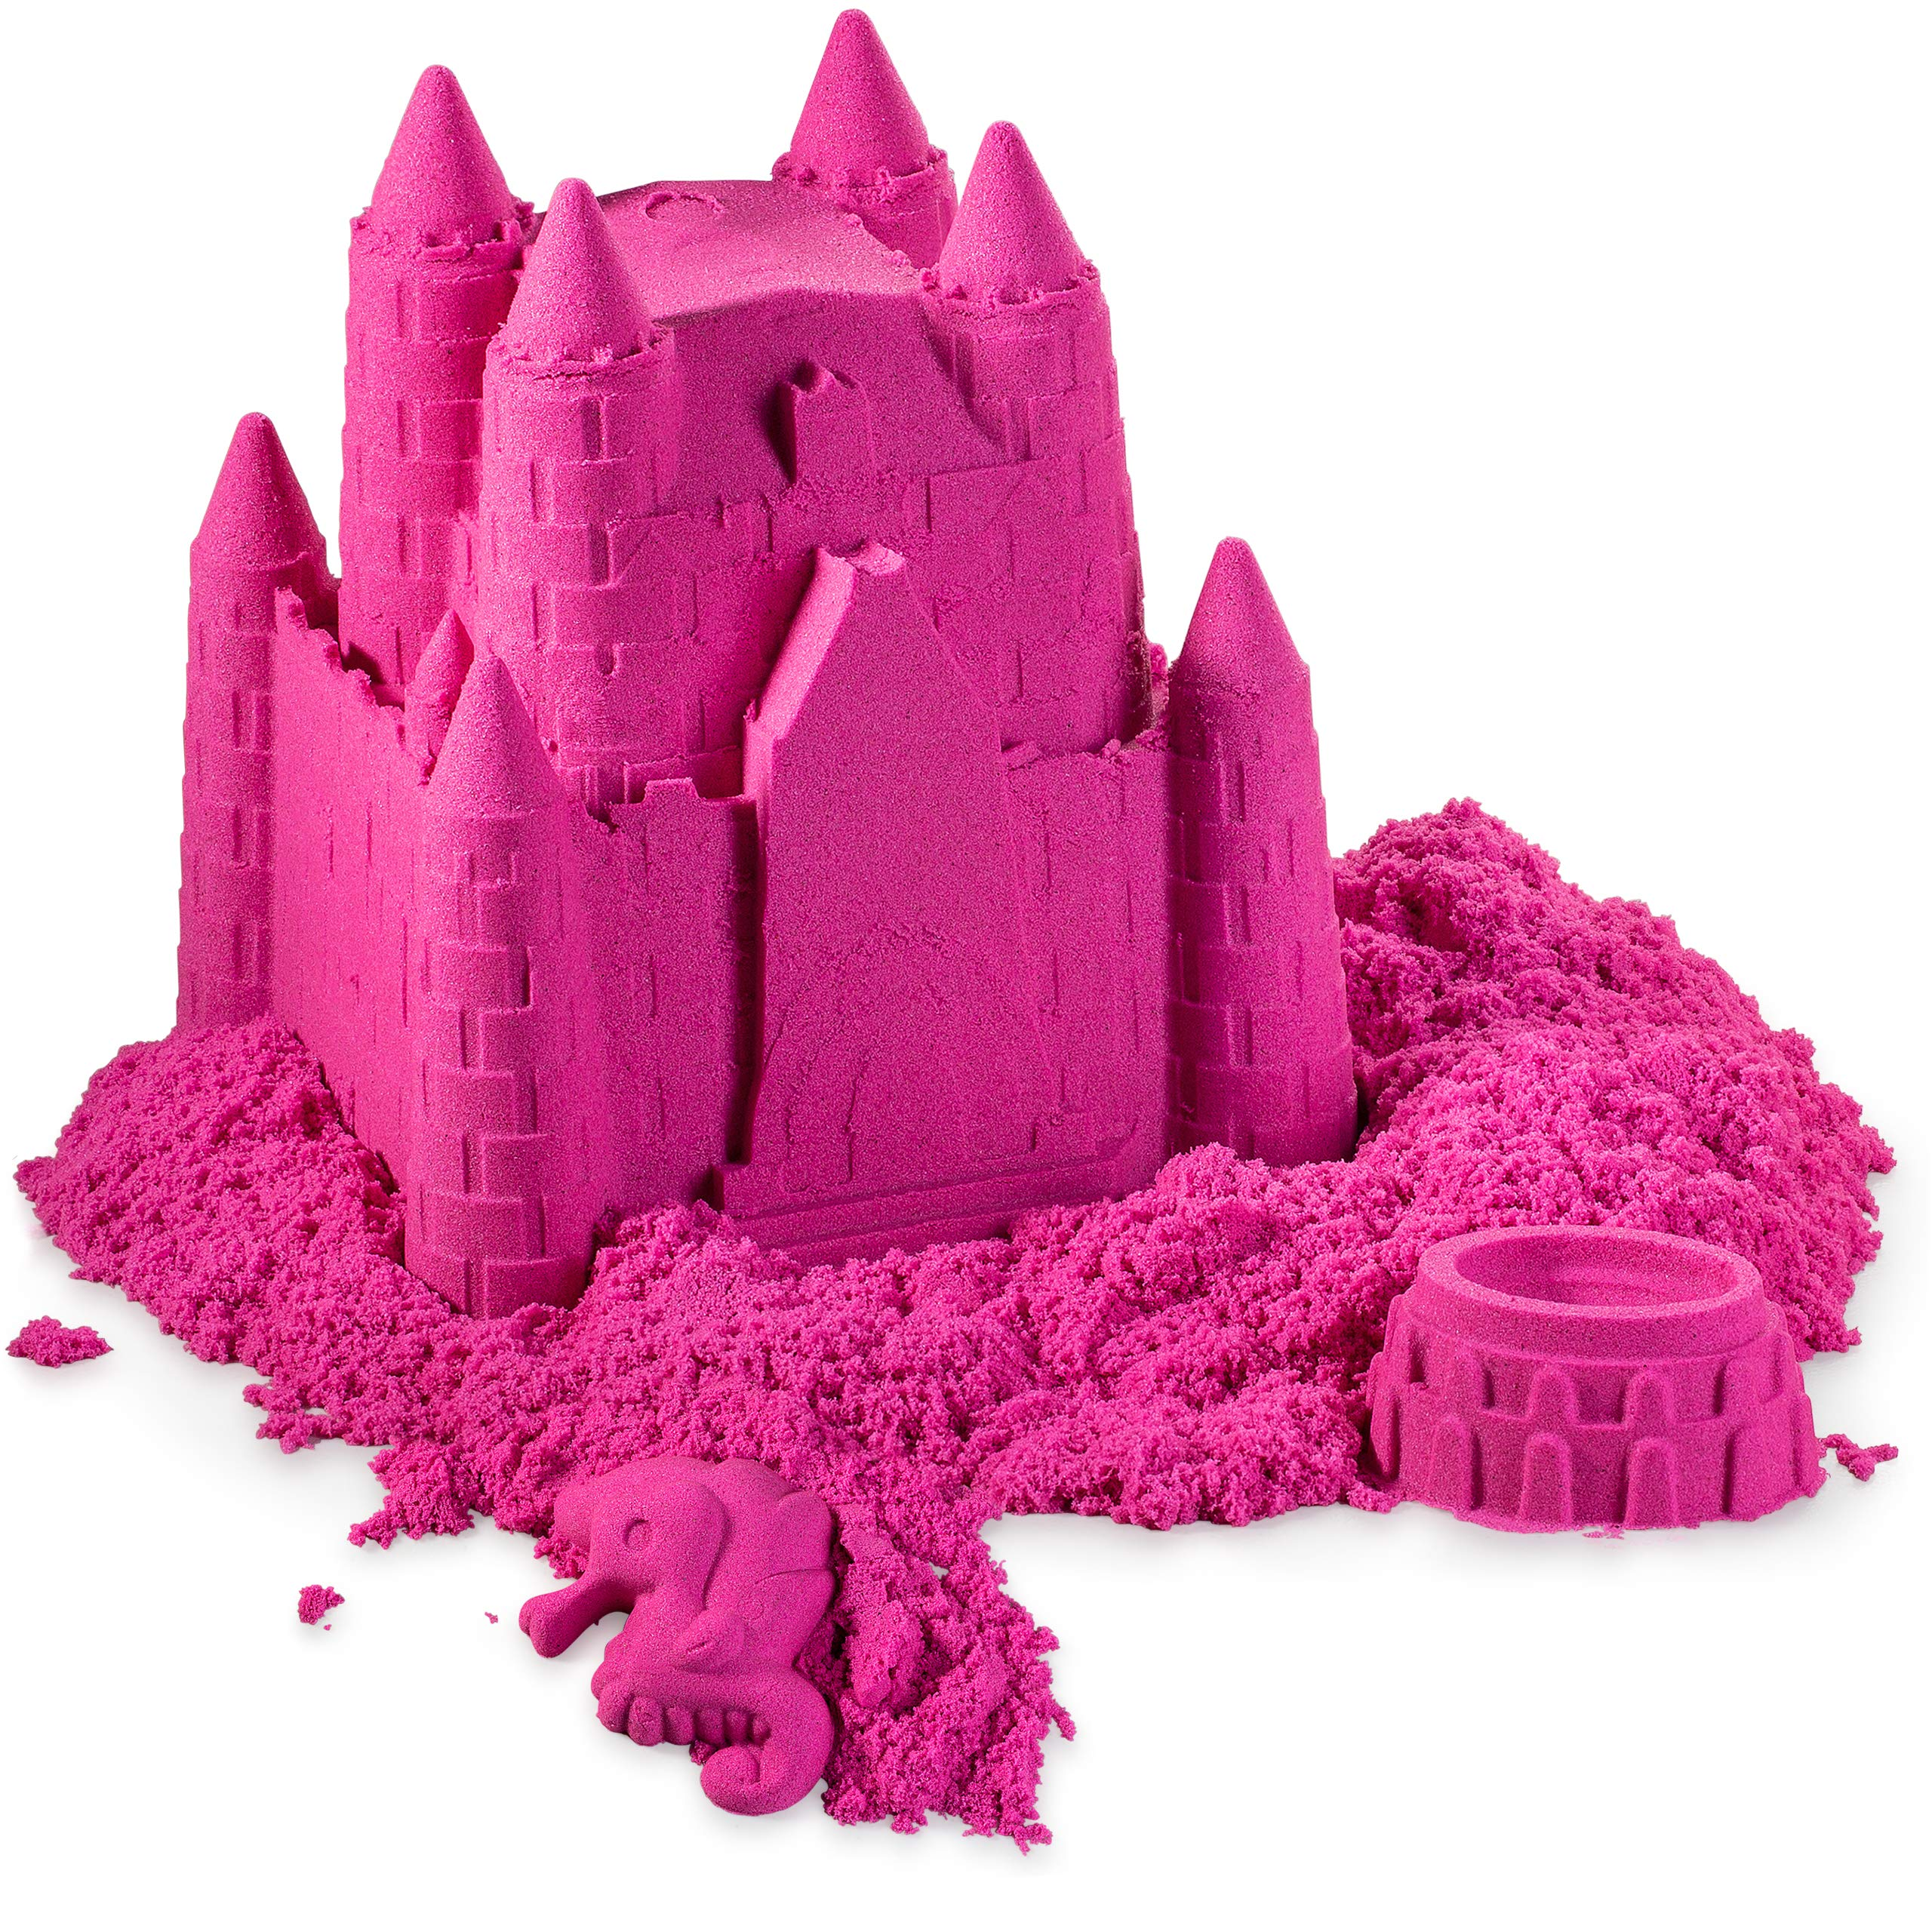 walla Play Sand (5 lbs.) | Pink Play Sand for Kids | Great Kinetic Sensory Toy for Creating Fun, Moldable Sand Art & Work On Fine Motor Skills | Bring The Beach to Your Home with Mess-Free Magic Sand